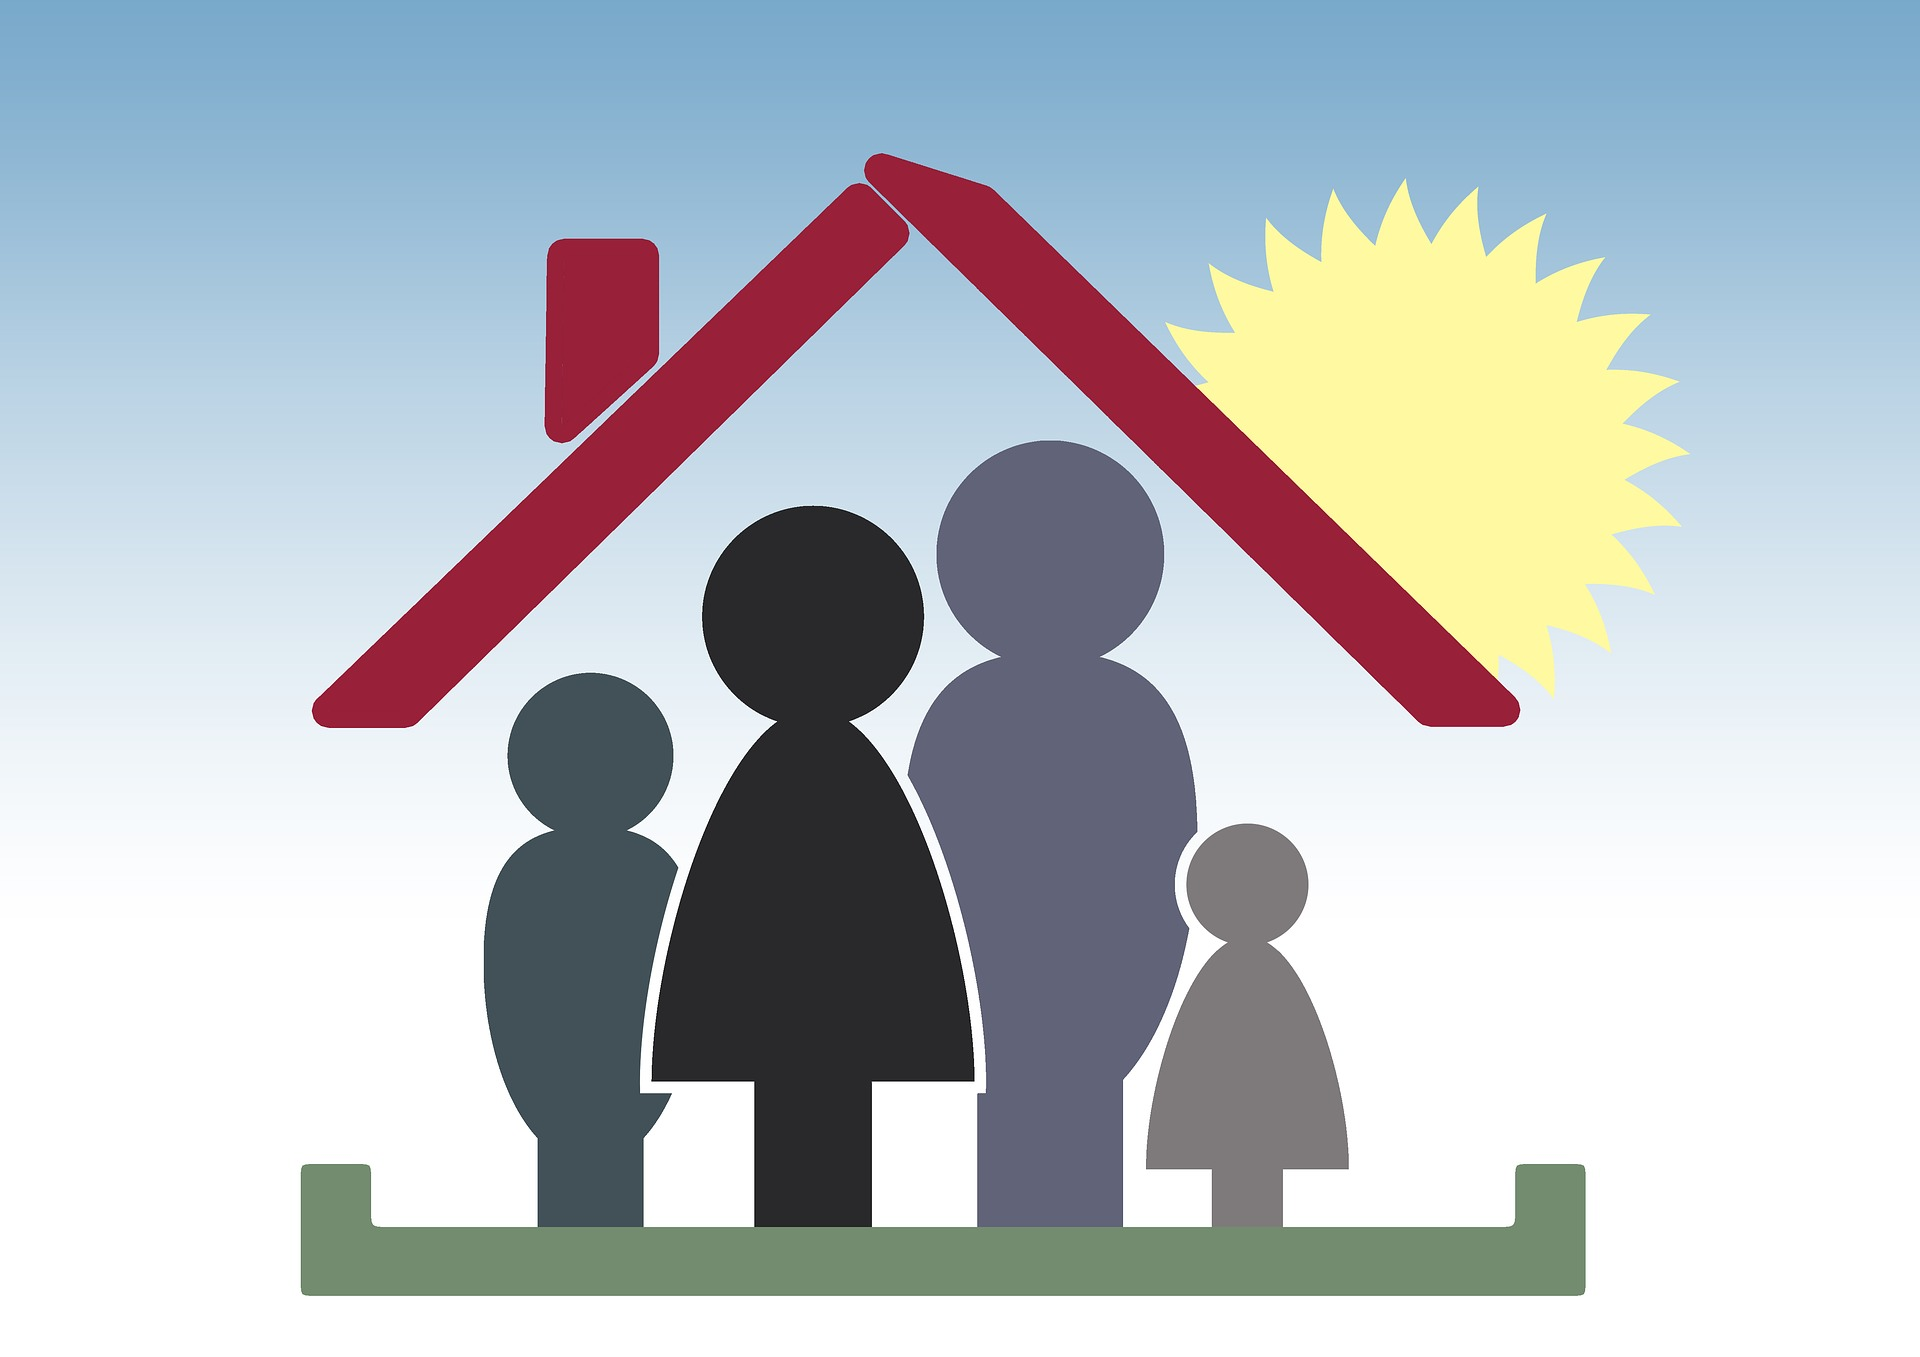 income protection insurance, income protection plan, wpp financial services, rosemount financial solutions, rochester, medway, kent